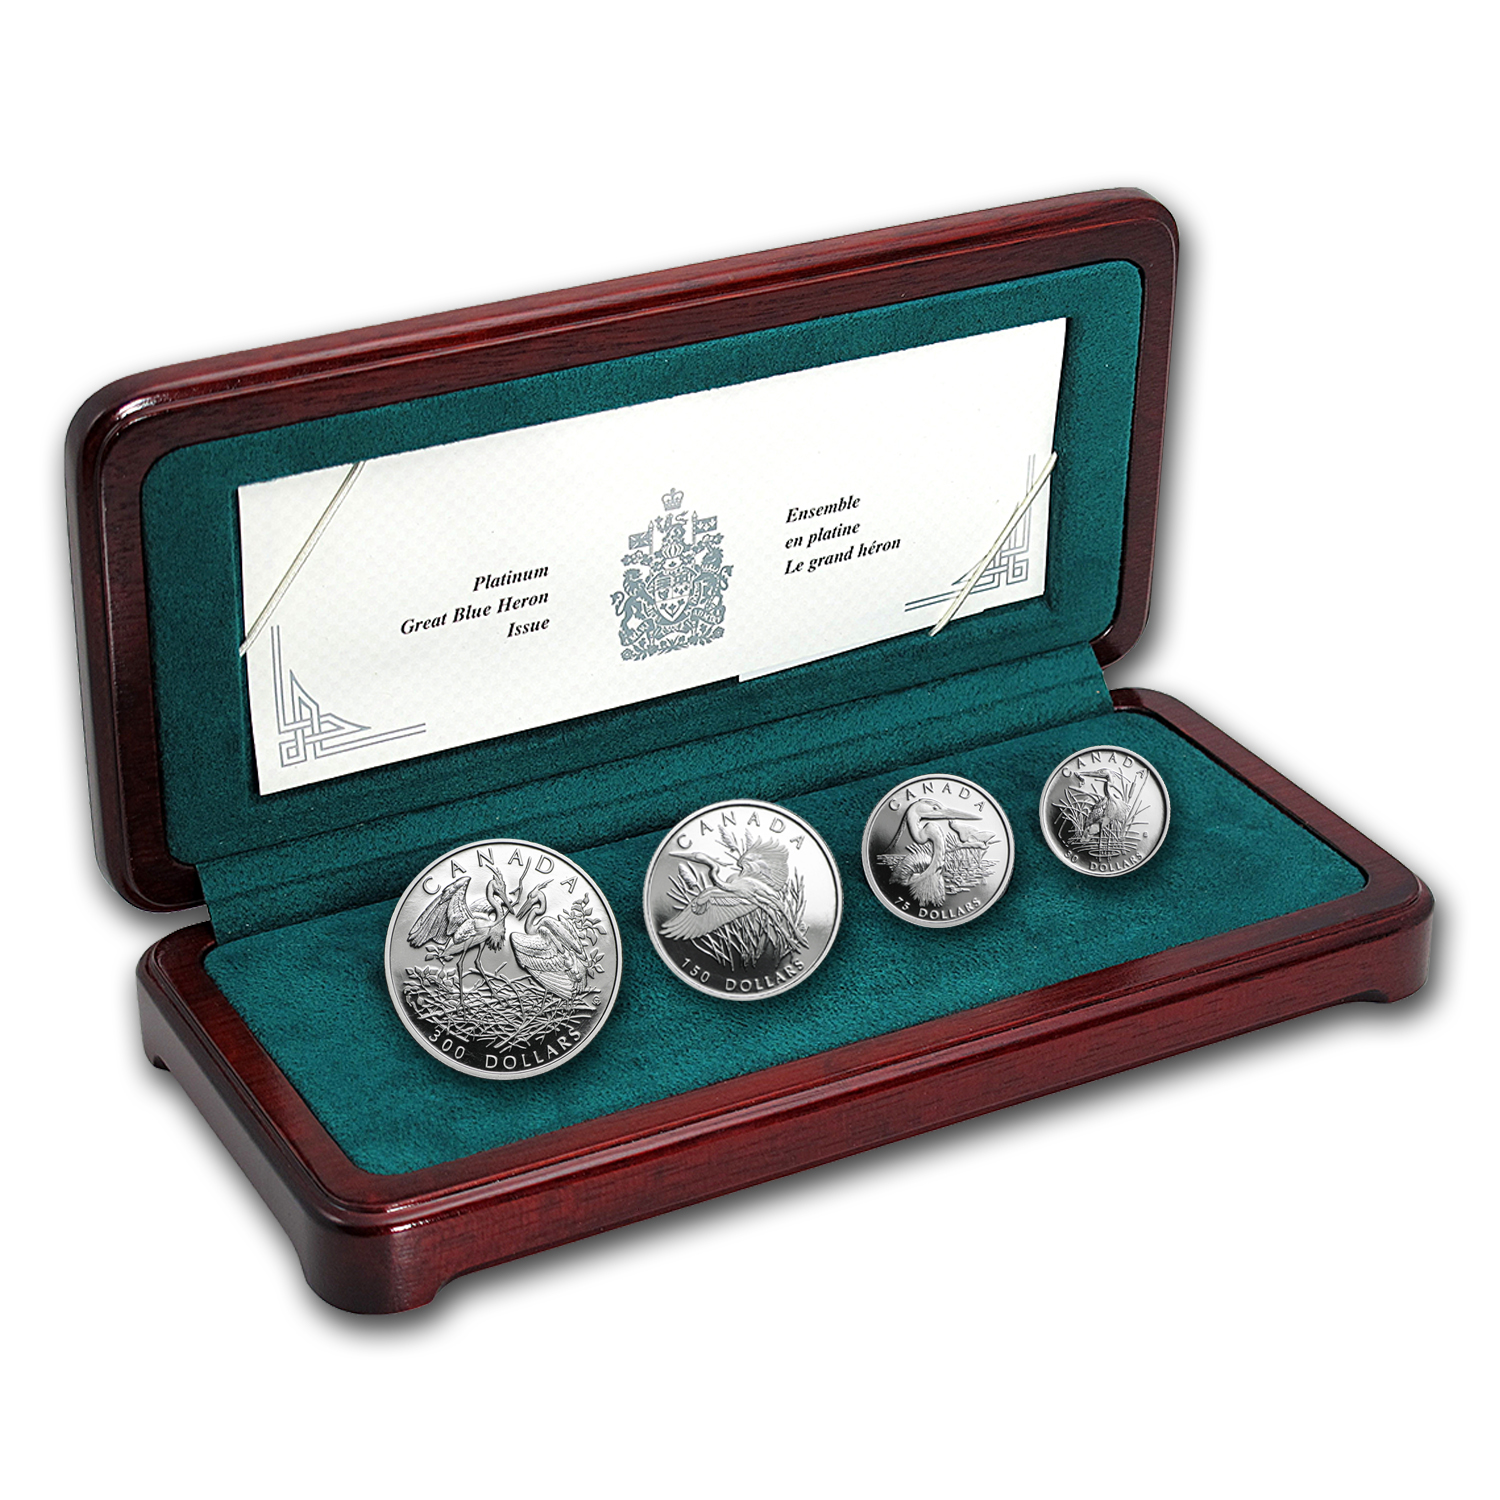 2002 Canada 4-Coin Proof Platinum Set: Great Blue Heron by